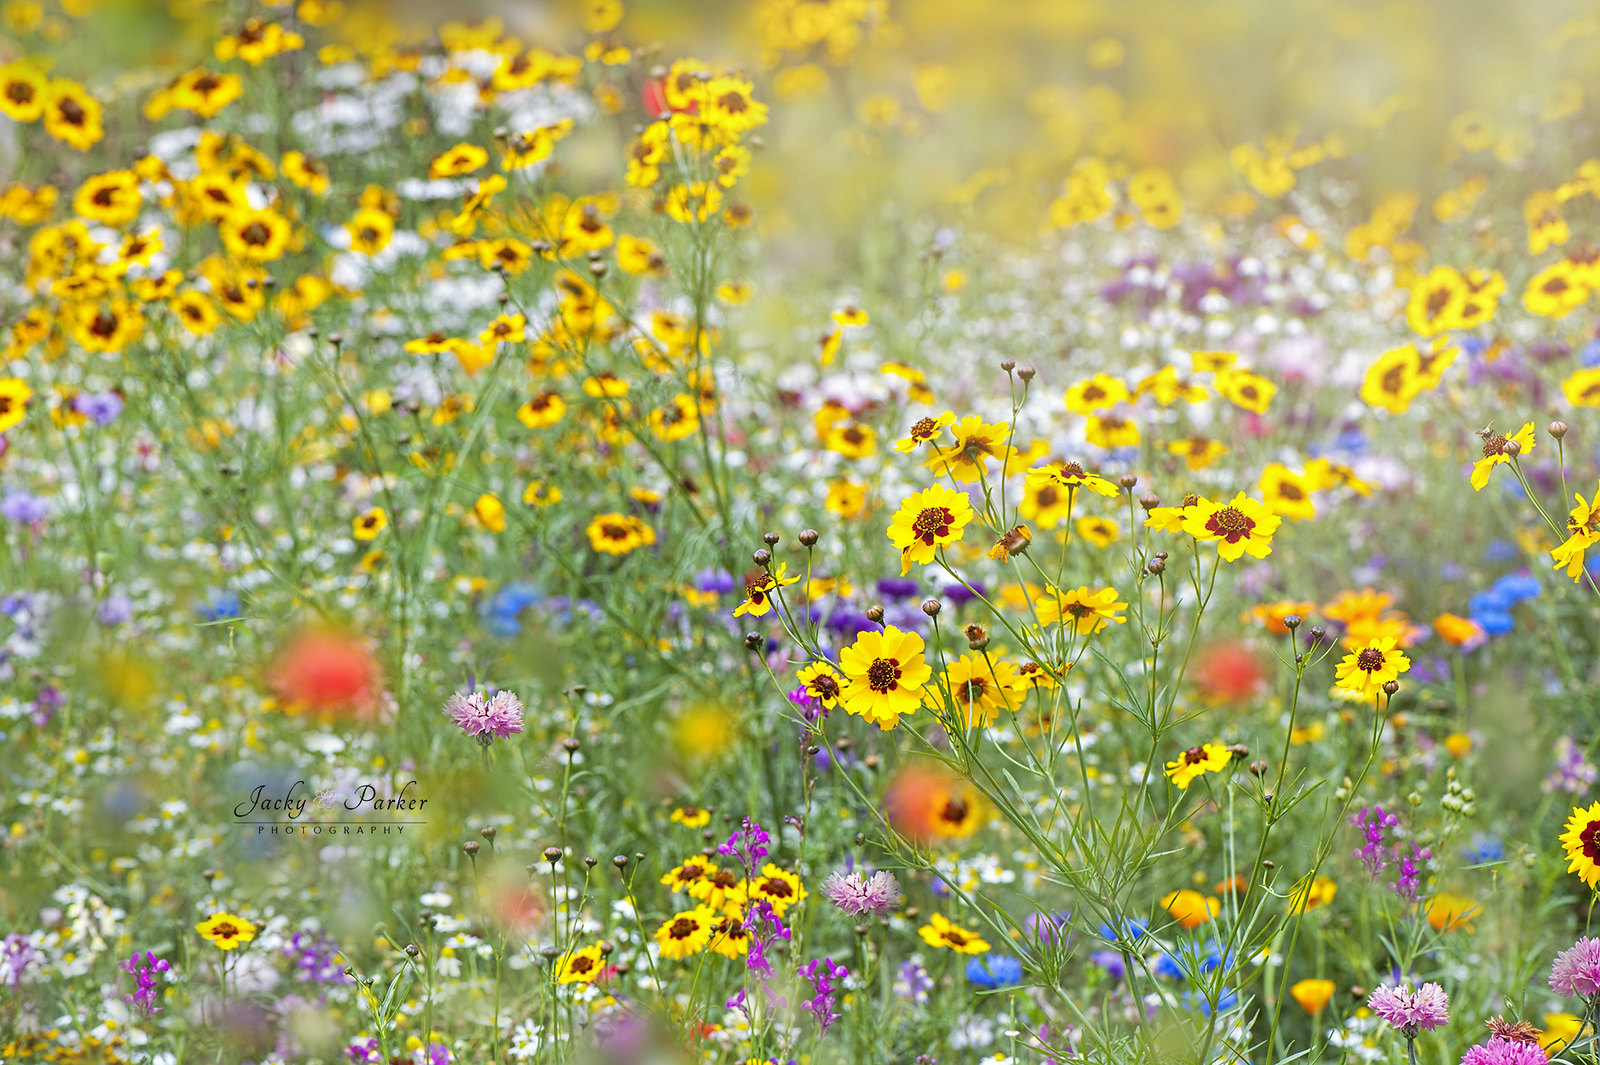 Wildflowers at Wisley by Jacky Parker